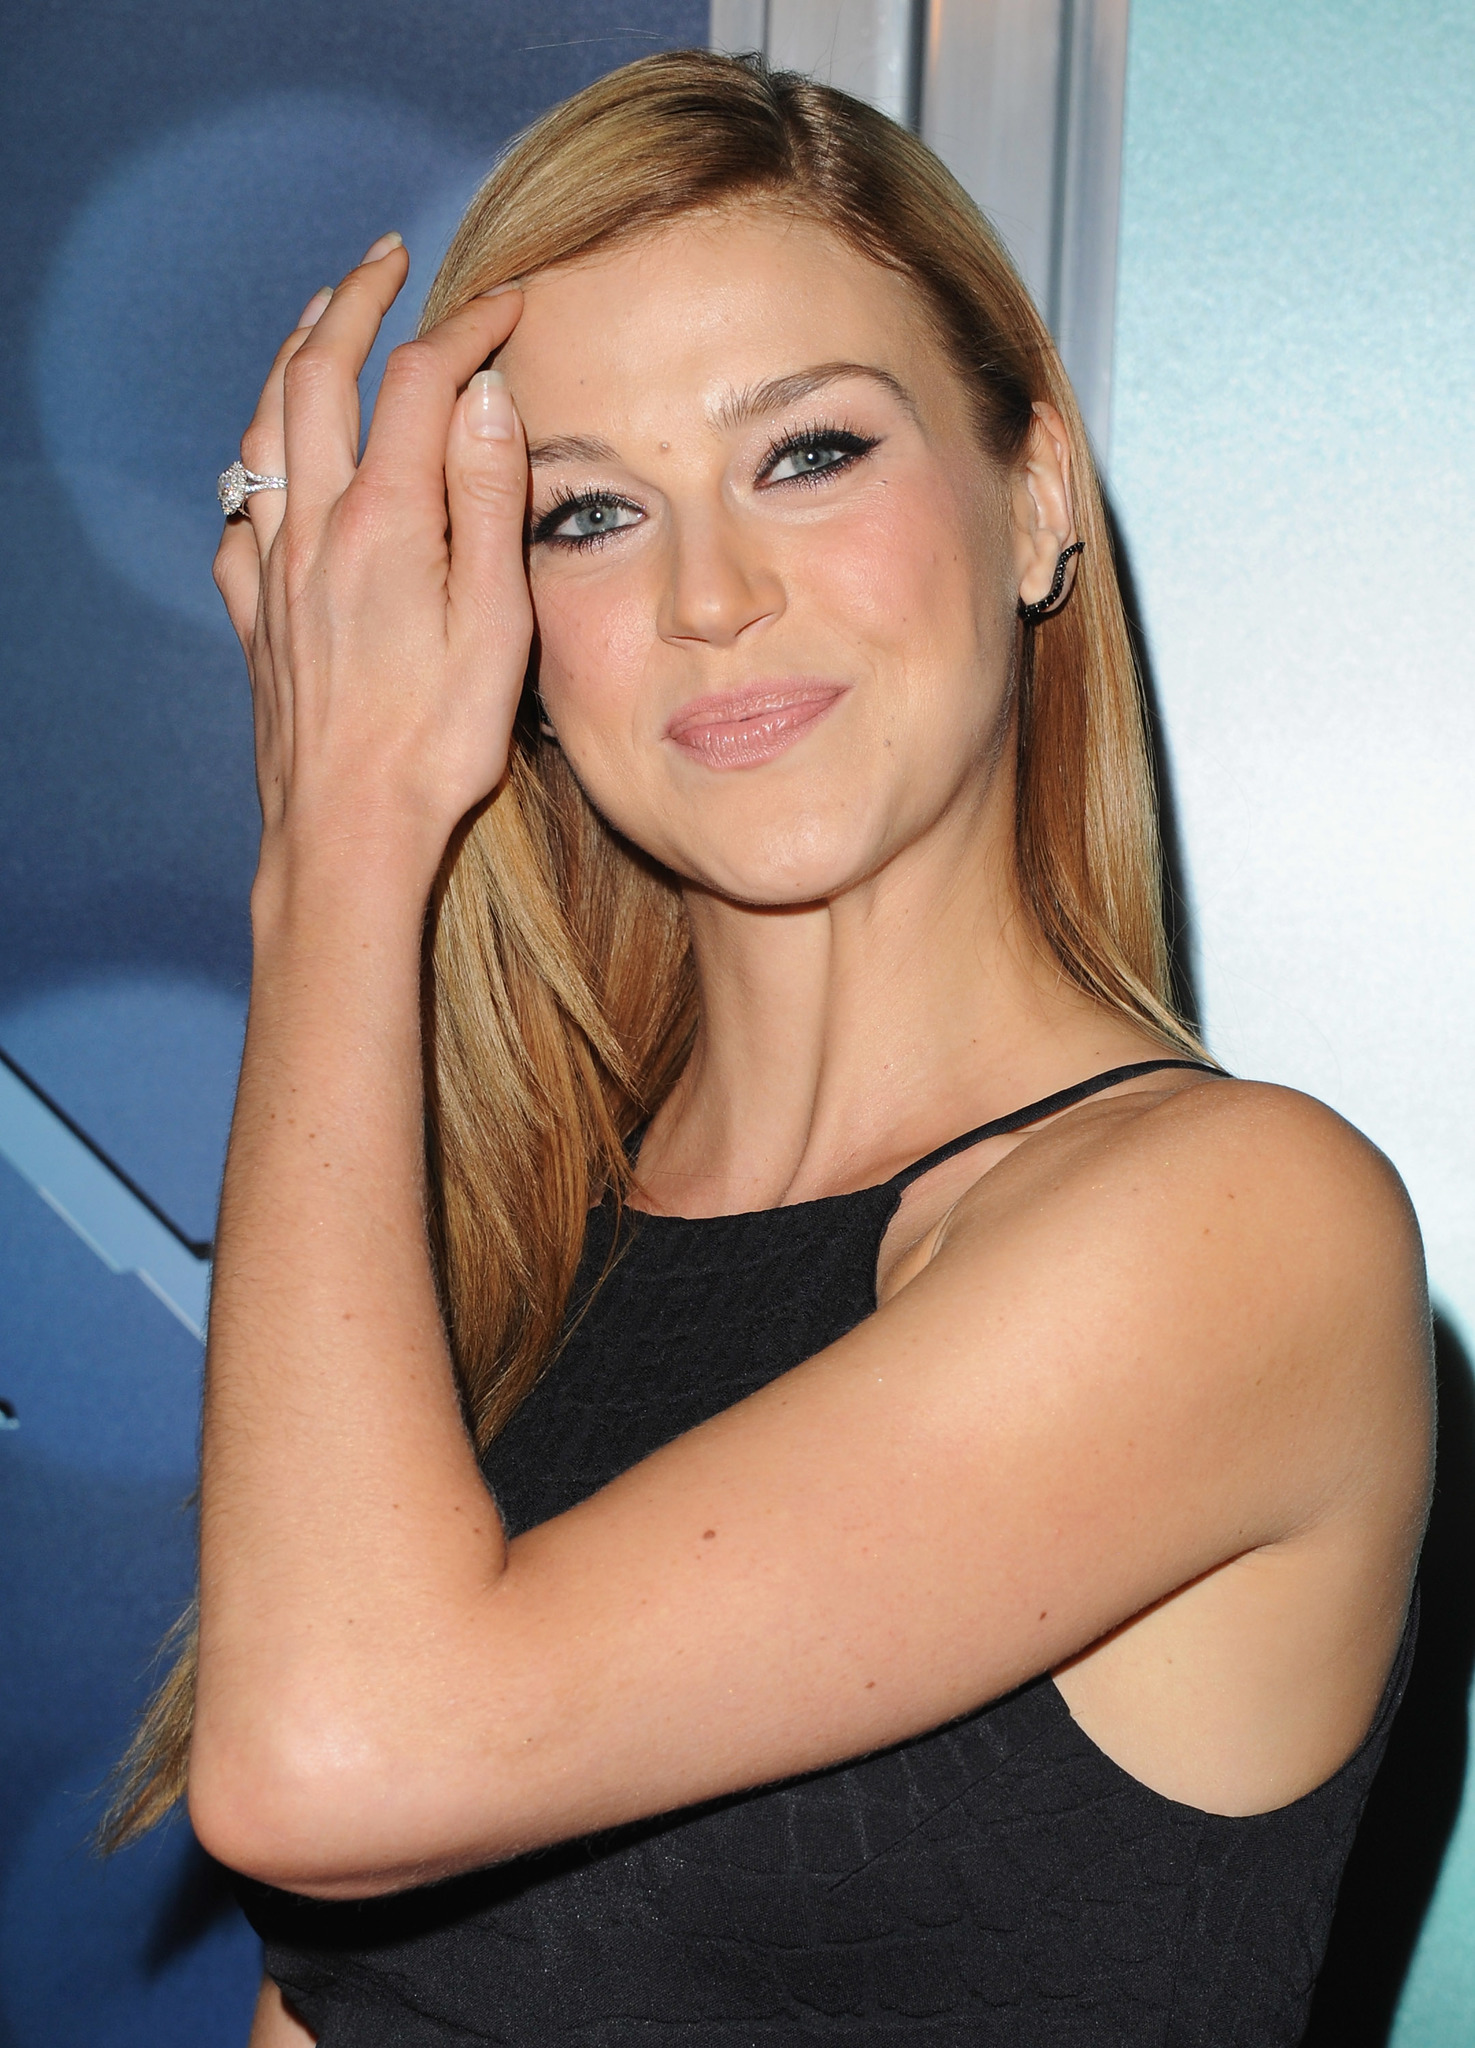 Adrianne Palicki at an event for John Wick (2014)